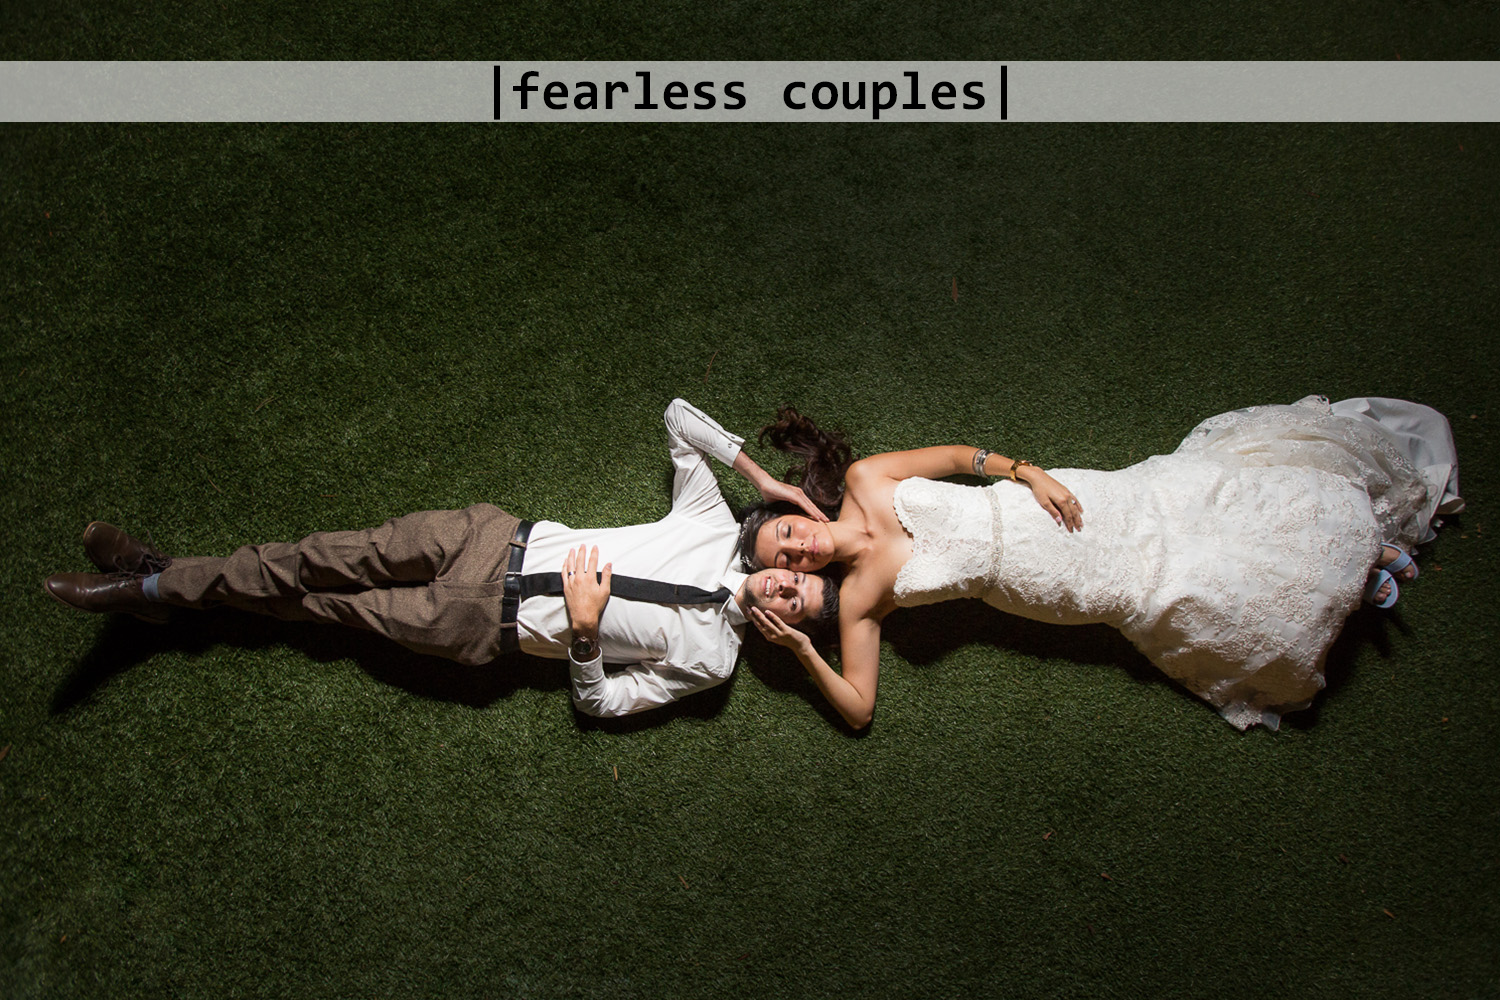 Fearless Couples